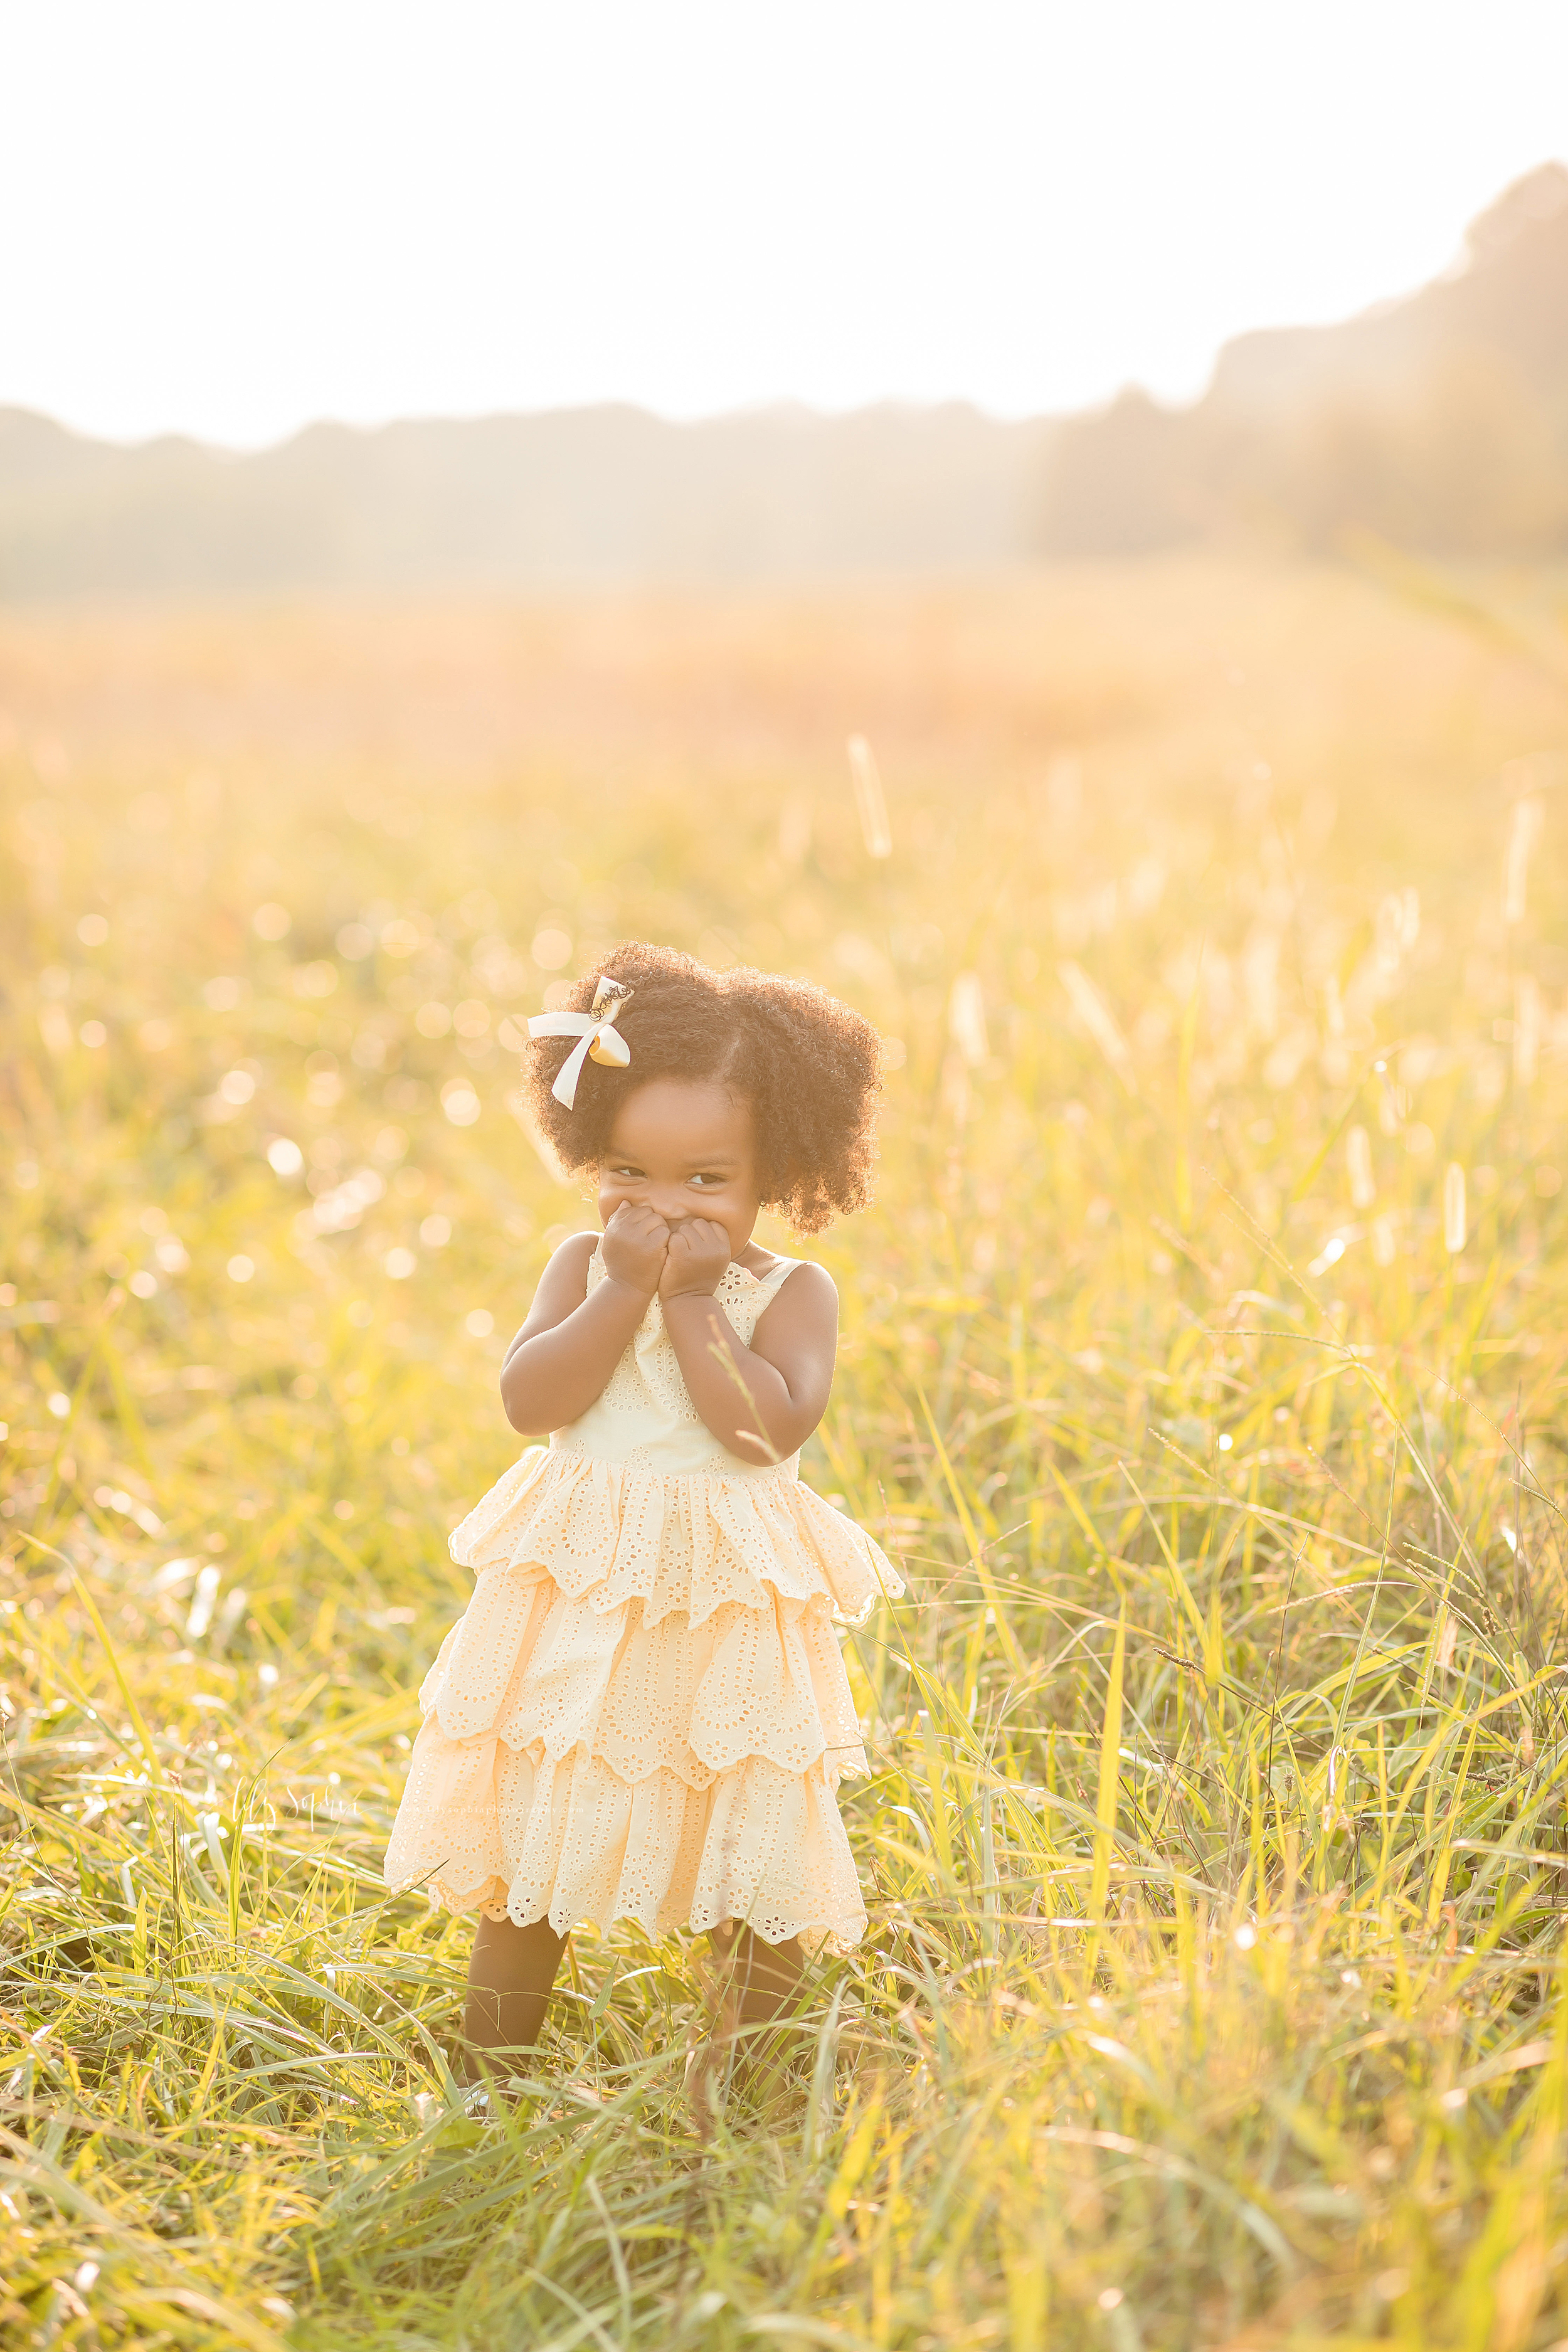 atlanta-midtown-brookhaven-ashford-dunwoody-decatur-lily-sophia-photography-outdoor-sunset-field-mountain-family-photographer-toddler-girl_0399.jpg